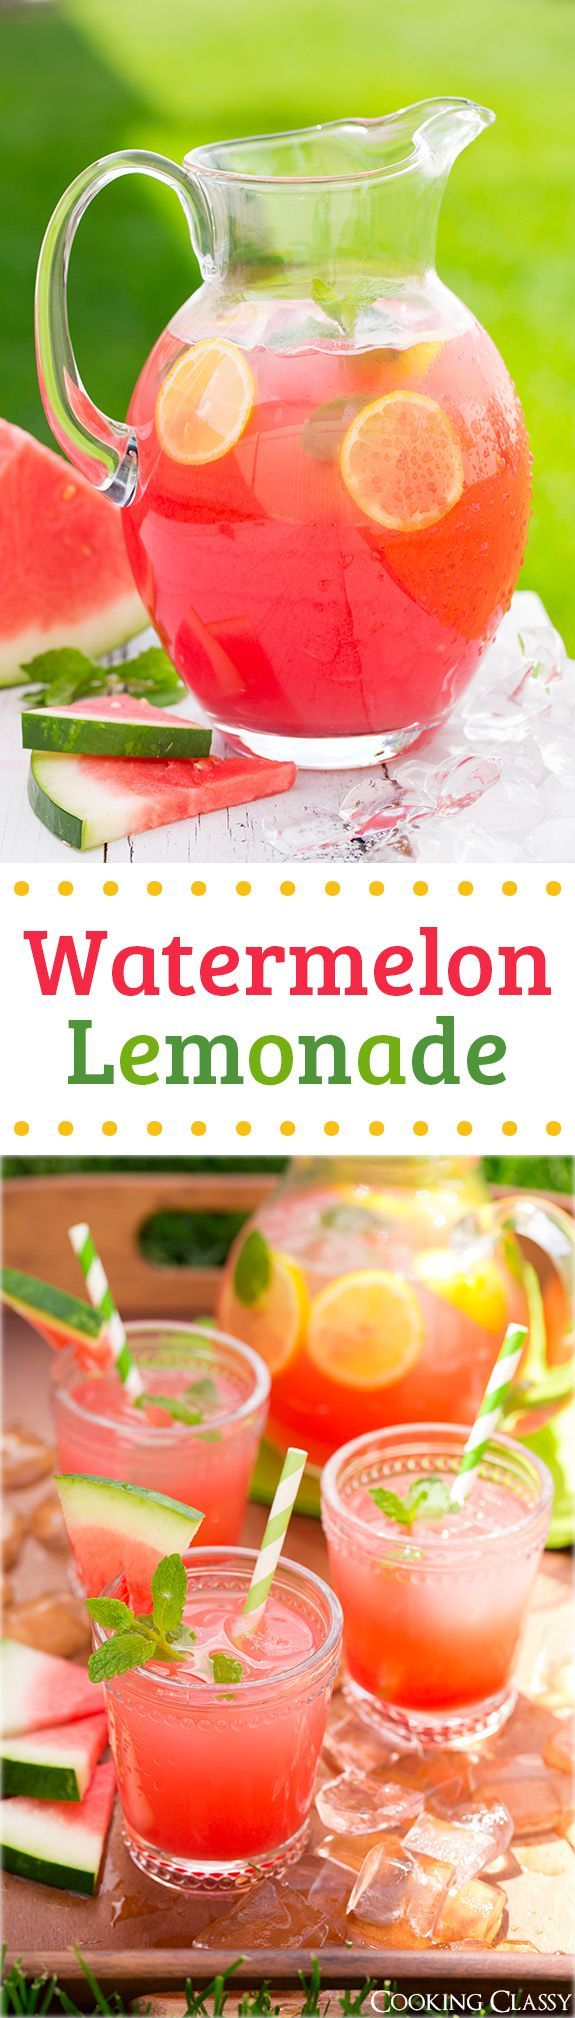 Watermelon Lemonade - my new favorite summer drink and the perfect use for those big watermelons! It is incredibly refreshing! #refreshingsummerdrinks